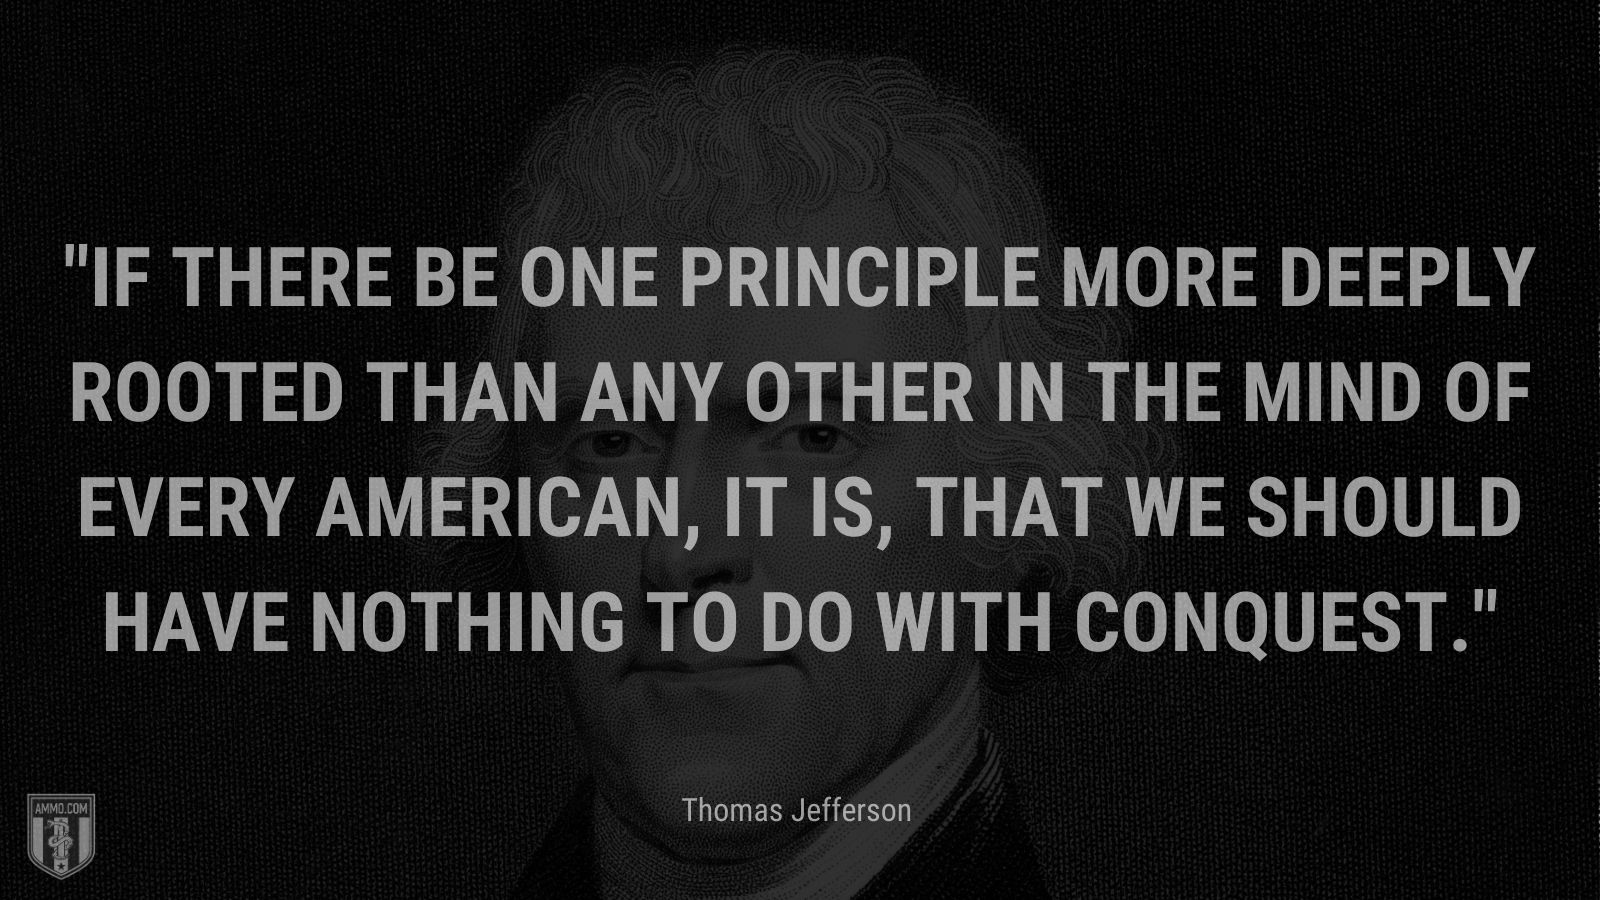 """""""If there be one principle more deeply rooted than any other in the mind of every American, it is, that we should have nothing to do with conquest."""" - Thomas Jefferson"""